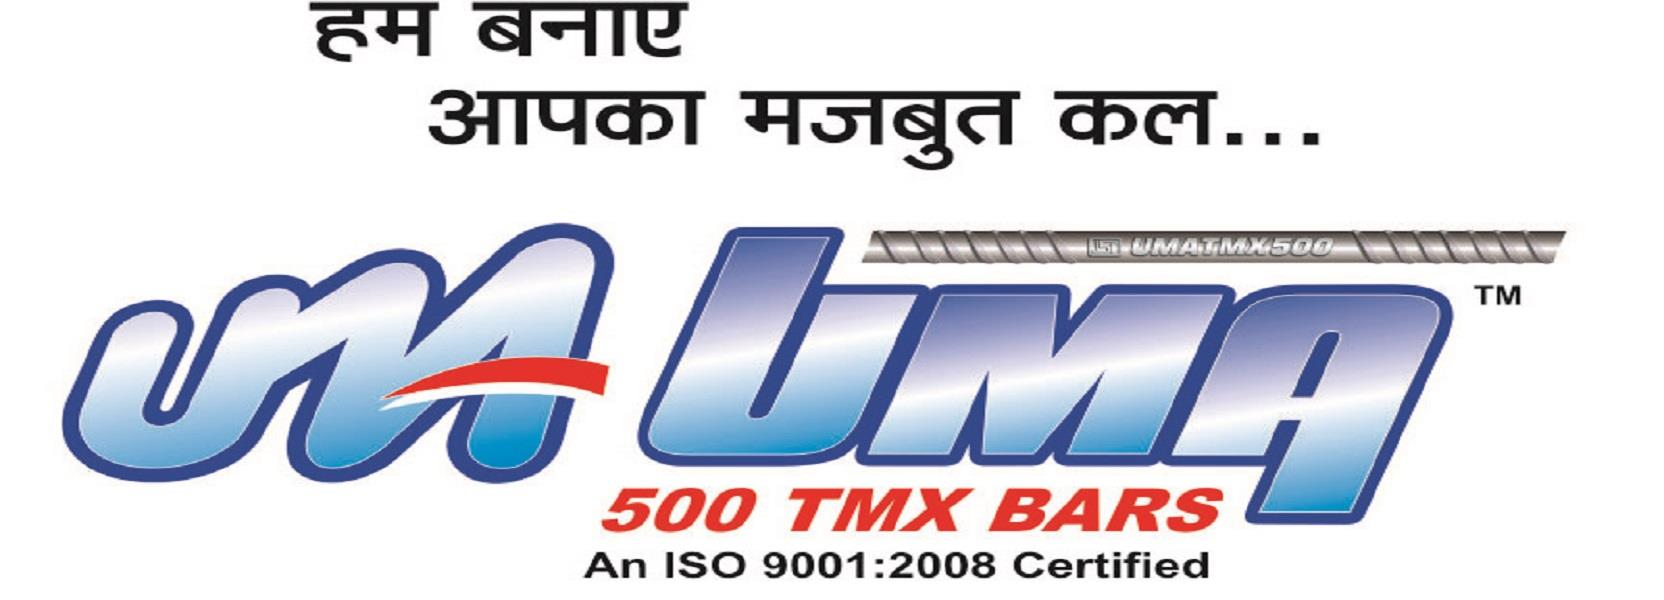 turer in India Omsairam Steels & Alloys Pvt. Ltd is makers of the MS Billets in its melting division and UMA 500 TMX Steel Bars in its rolling division by using its own MS Billets . Omsairam Steels & Alloys Pvt. Ltd is an IS 1786:2008 & ISO 9001:2008 certified manufacturer situated in Jalna. Centrally located in Maharashtra, Omsairam Steels & Alloys Pvt. Ltd mainly supplies high end MS Billets to its rolling division as a raw material for the production of UMA 500 TMX Bar. Equipped with a state-of-the-art QualityControl Unit powered by the most modern spectrometer Omsairam Steels & Alloy Pvt. Ltd produces MS Billets with an ideal chemical composition, resulting in the production of high quality steel bars with high strength as well as ductility. Based on these billetsOmSairam Steels & Alloys Pvt. Ltd produces supreme quality steel bars/TMX bars for the construction companies across Maharashtra and South India in the brand name of UMA 500 TMX Bar.